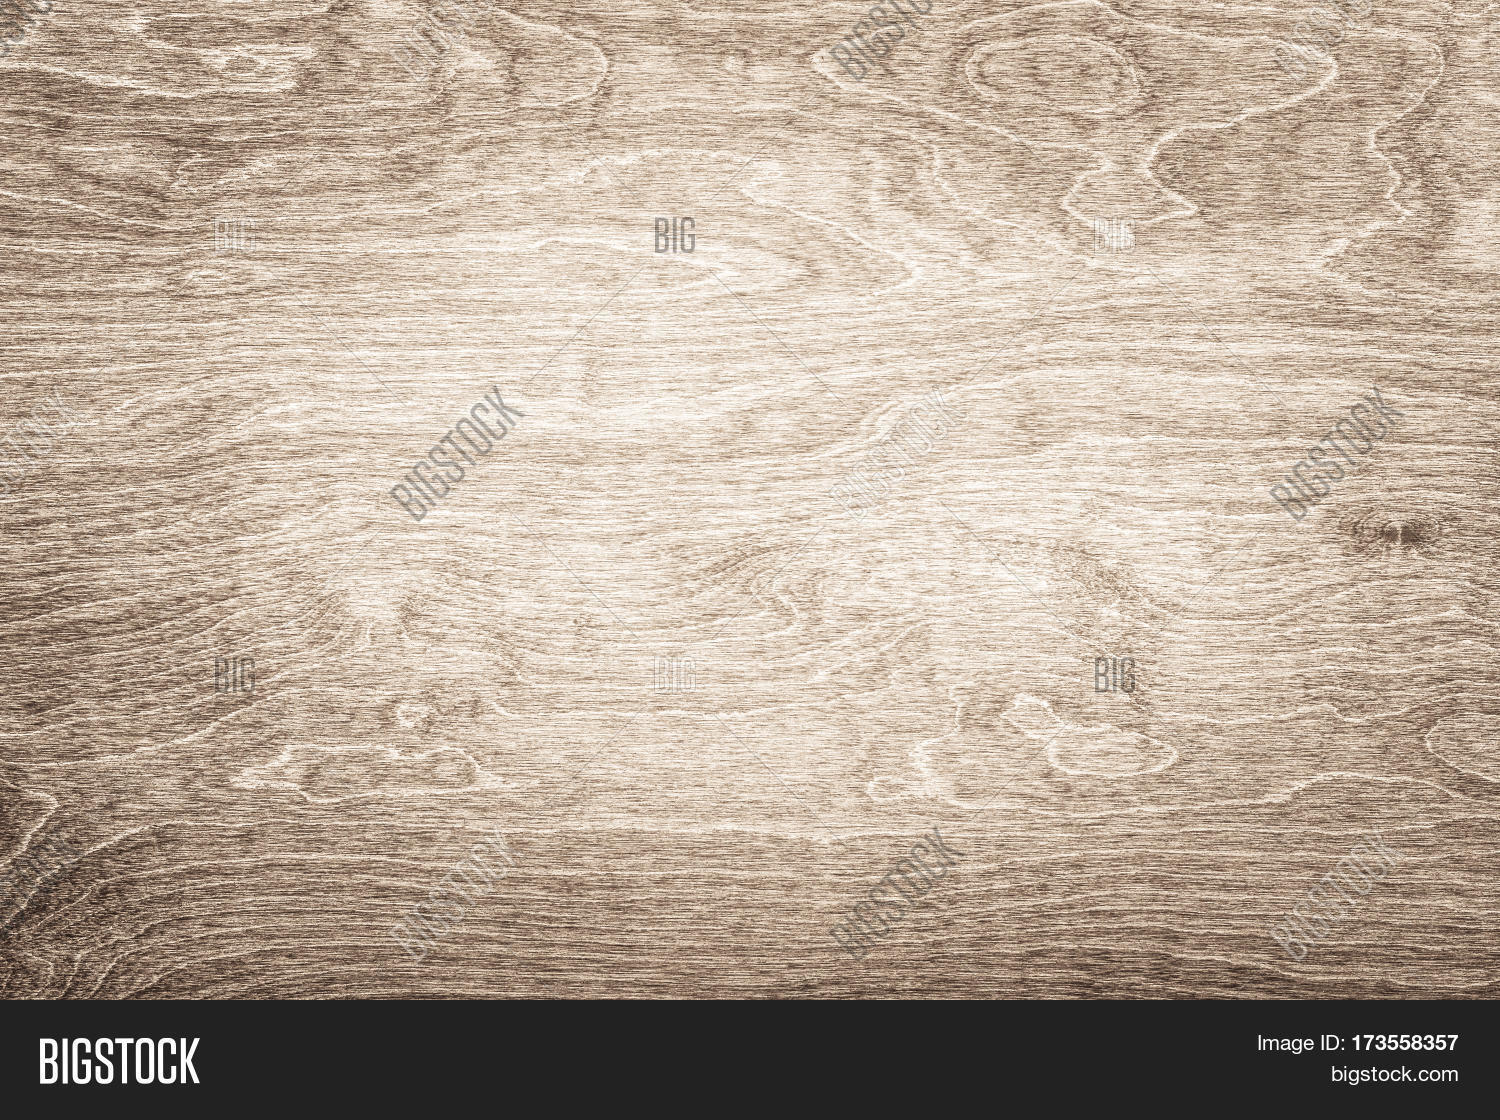 Rustic wood table texture - Old Wood Texture Background Surface Wood Table Surface Top View Vintage Wood Texture Background